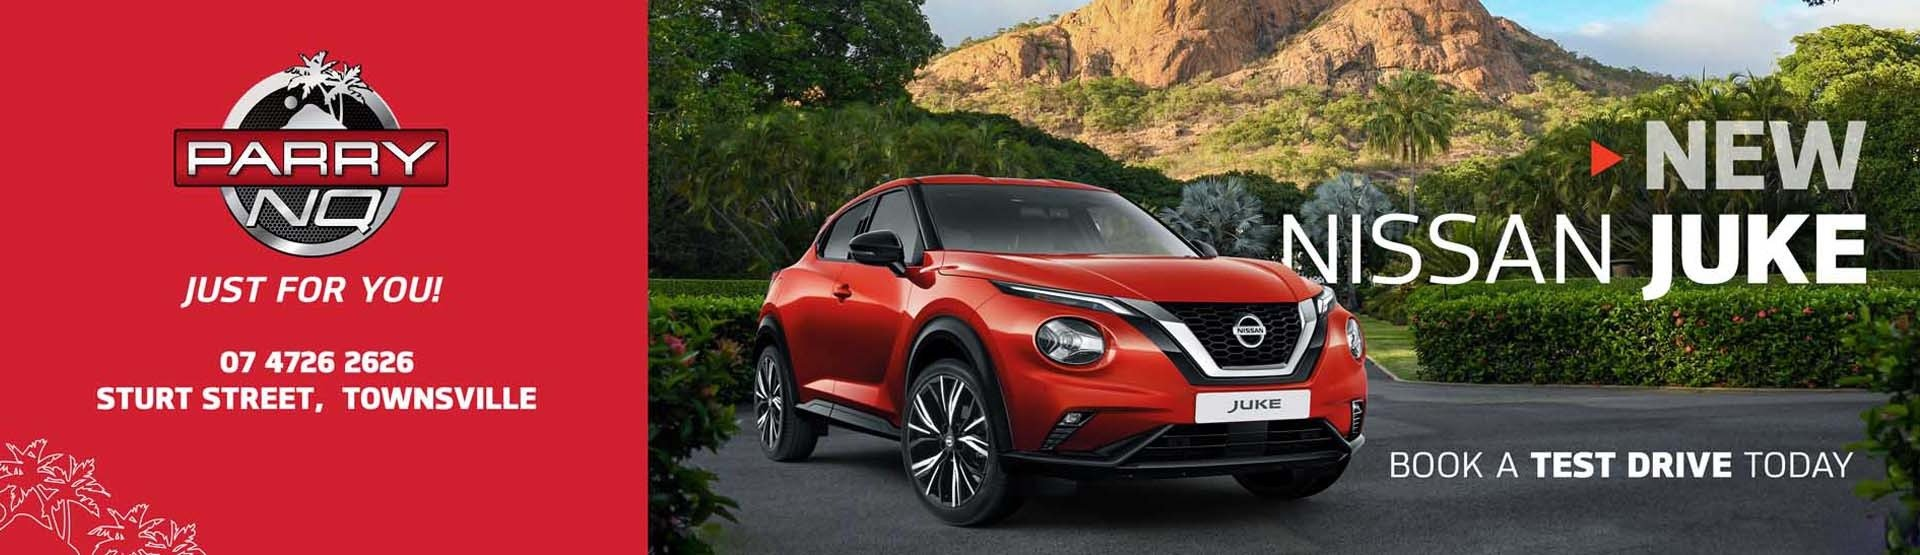 Parry NQ Nissan - New Juke has arrived